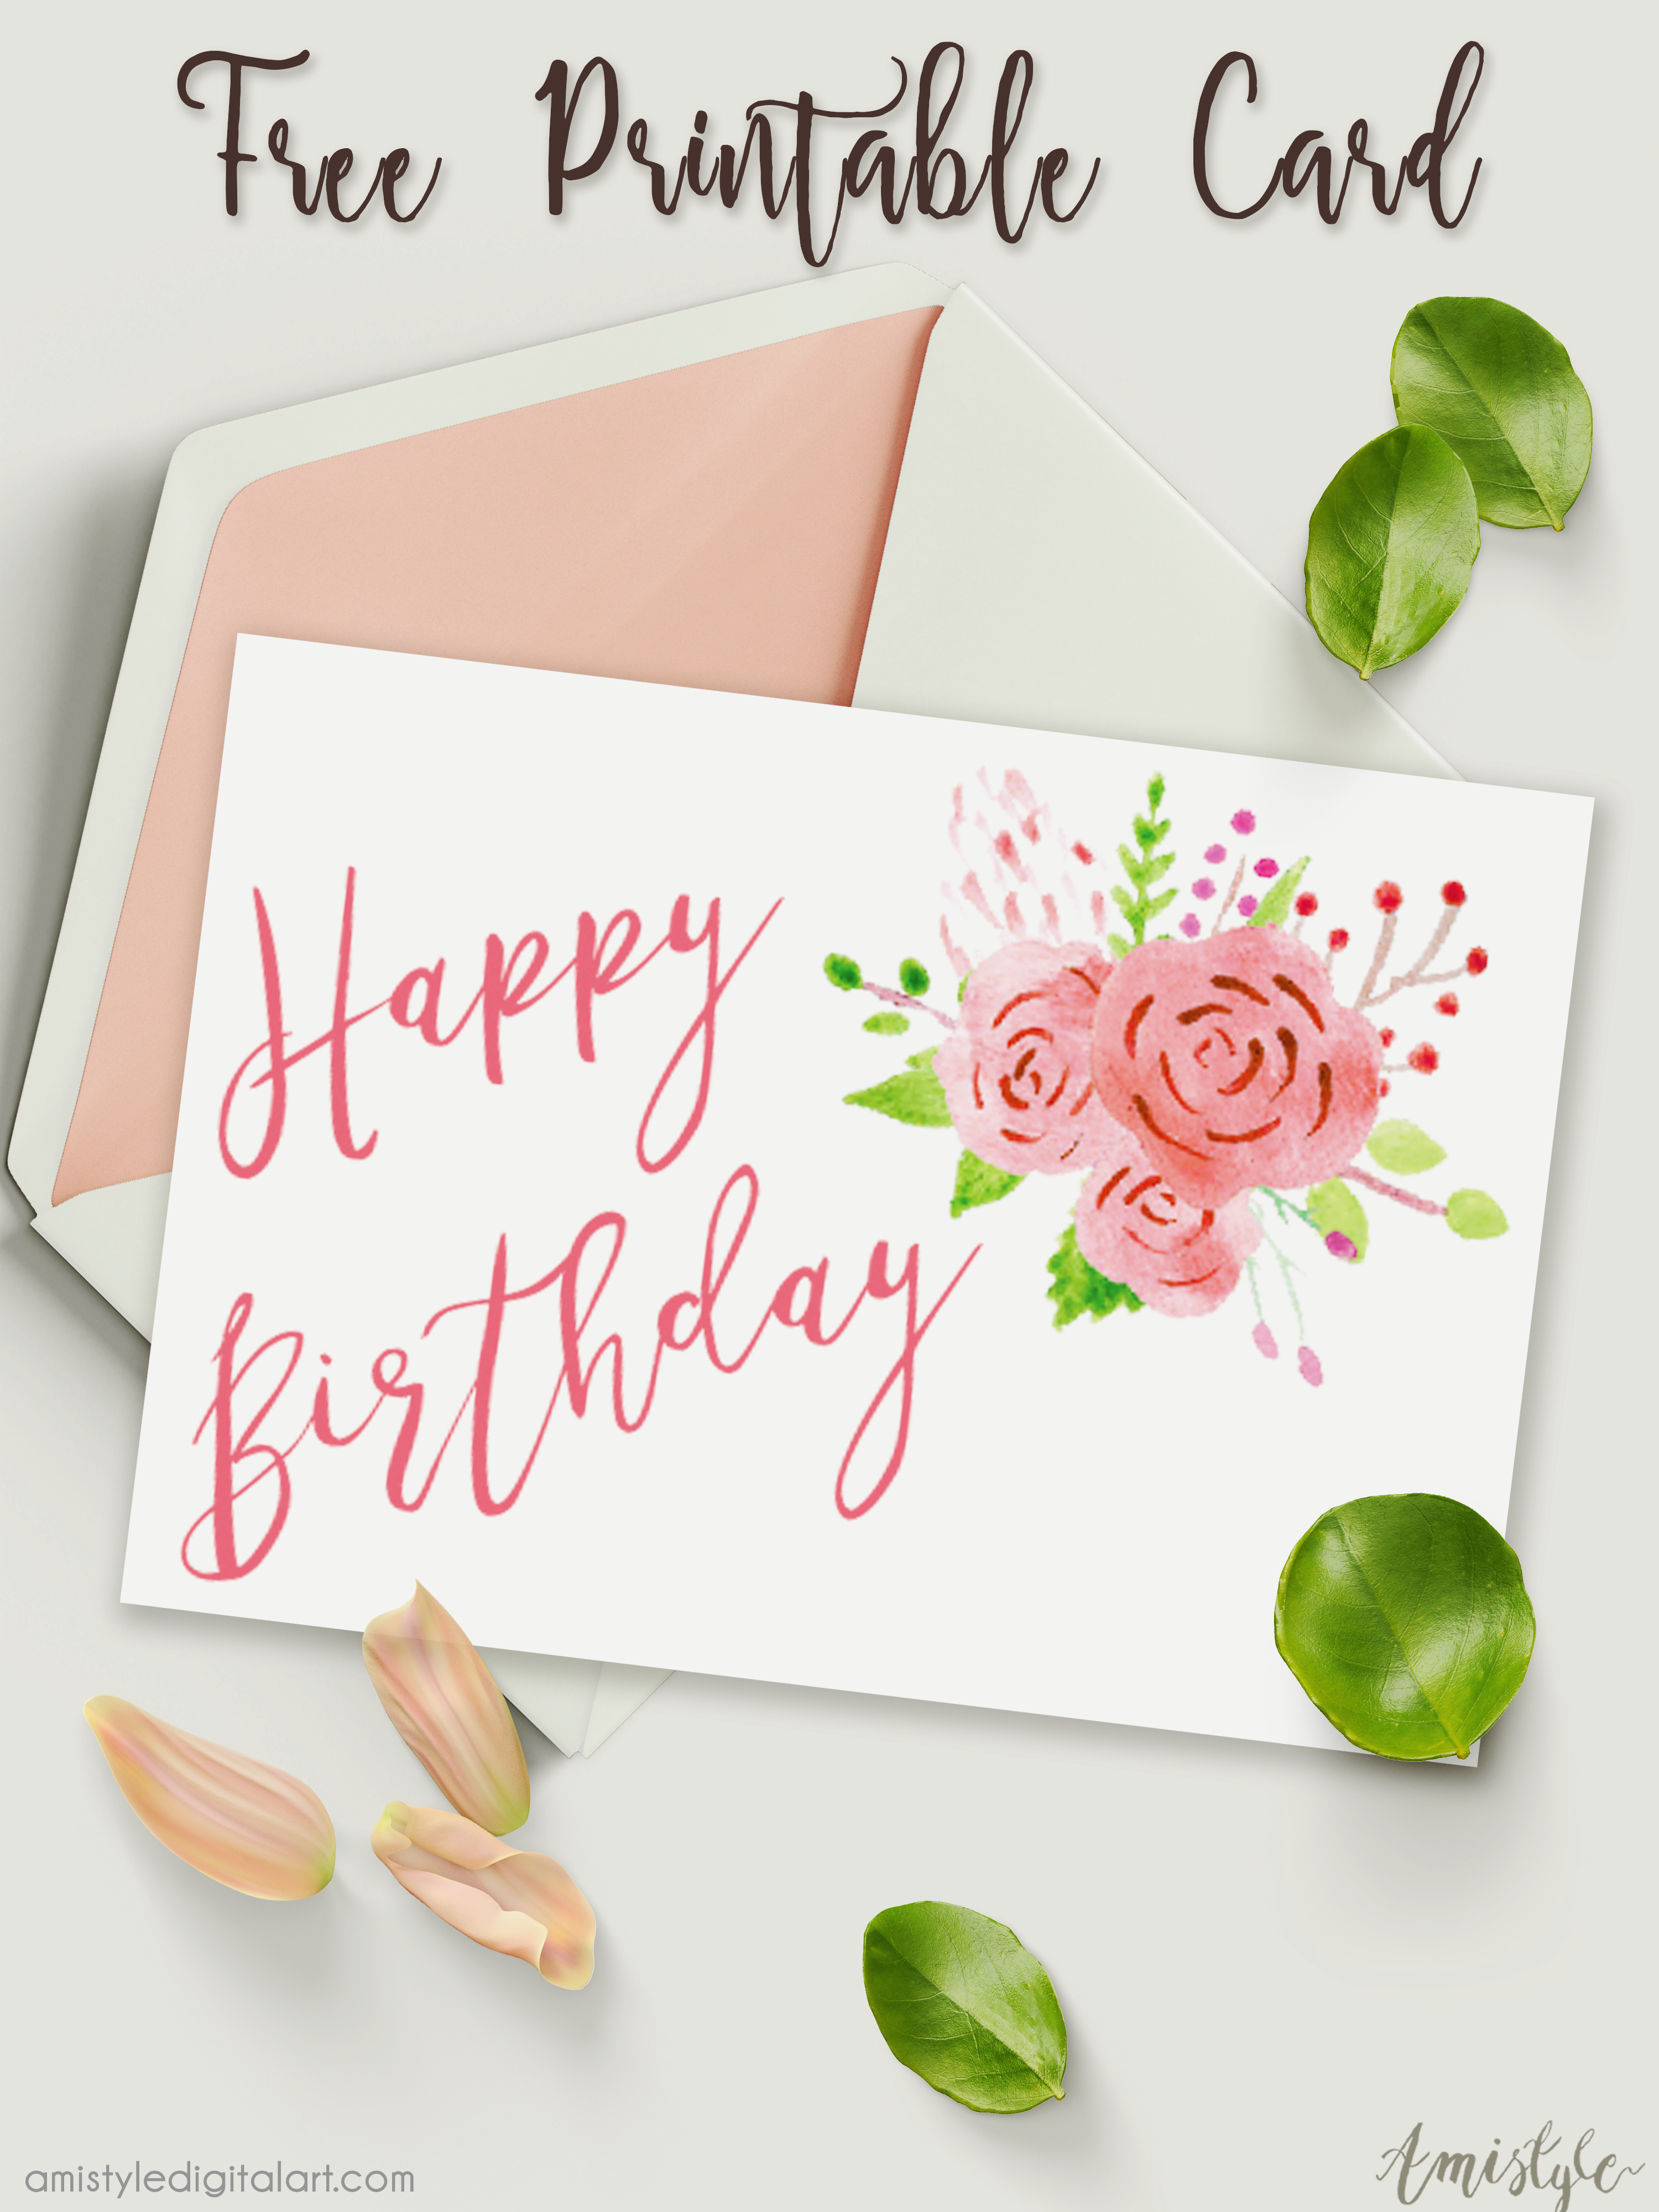 Free Printable Birthday Card with watercolor floral design ...